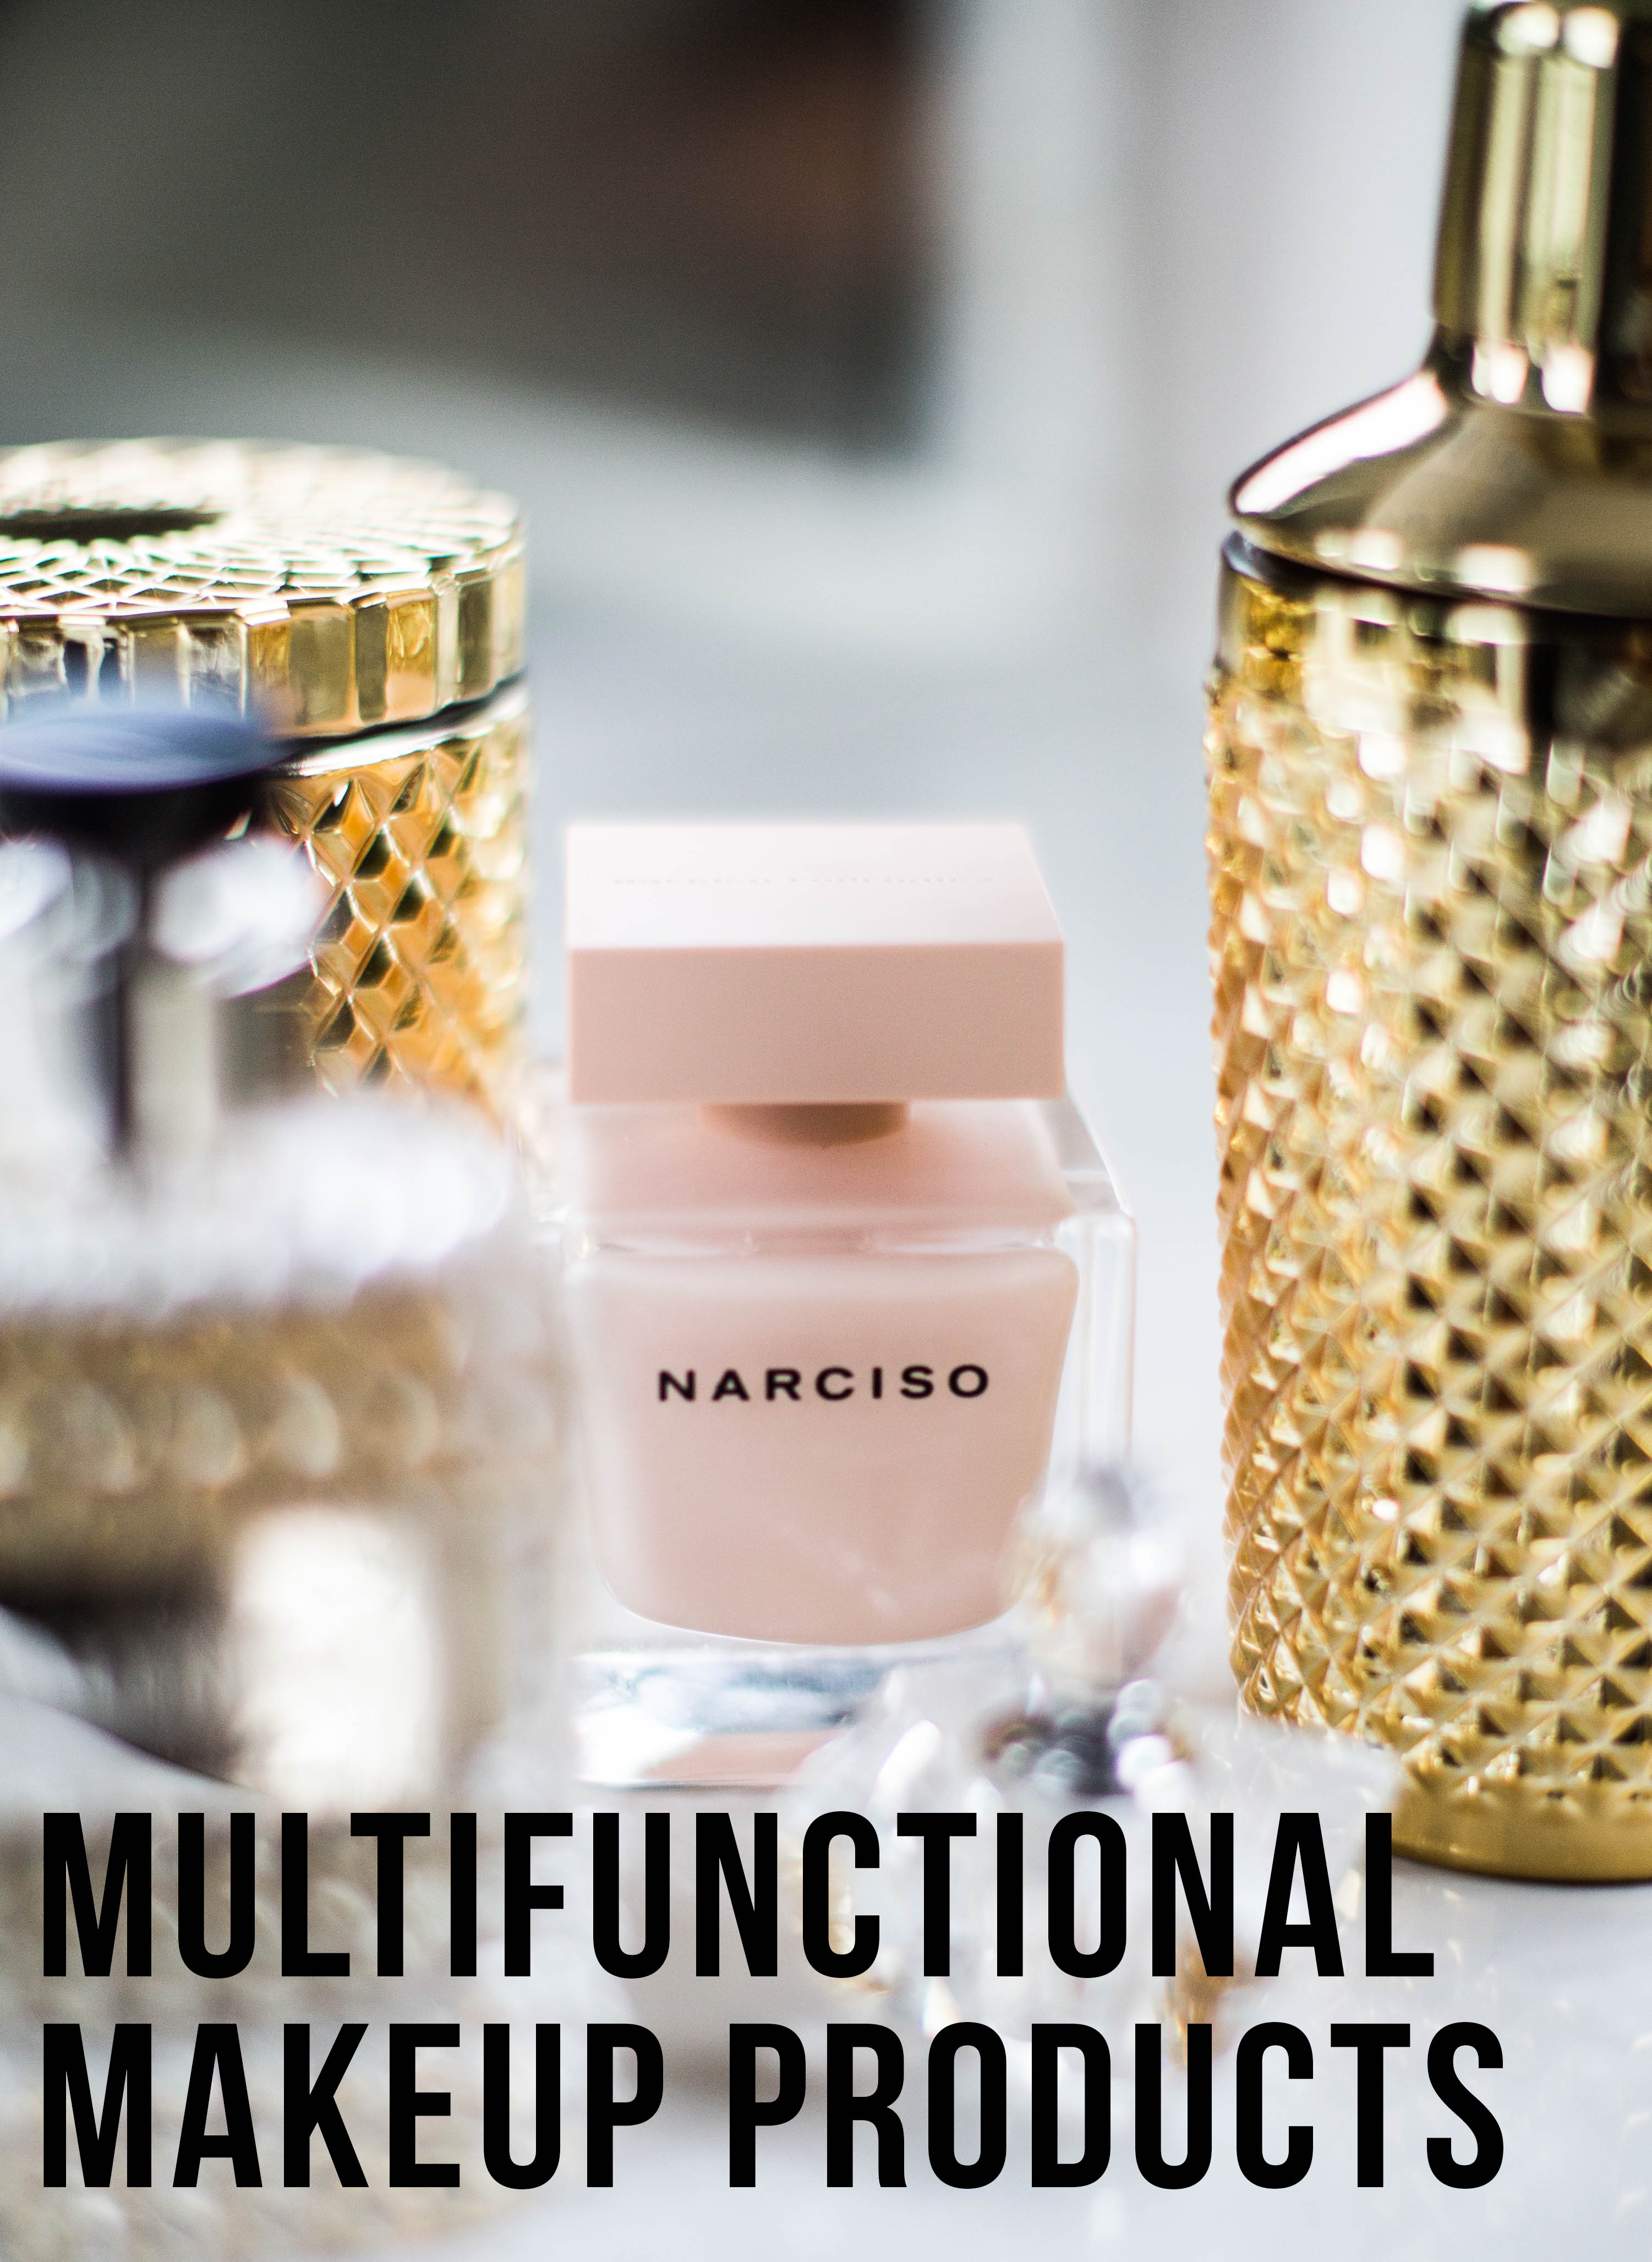 Multifunctional Makeup Products